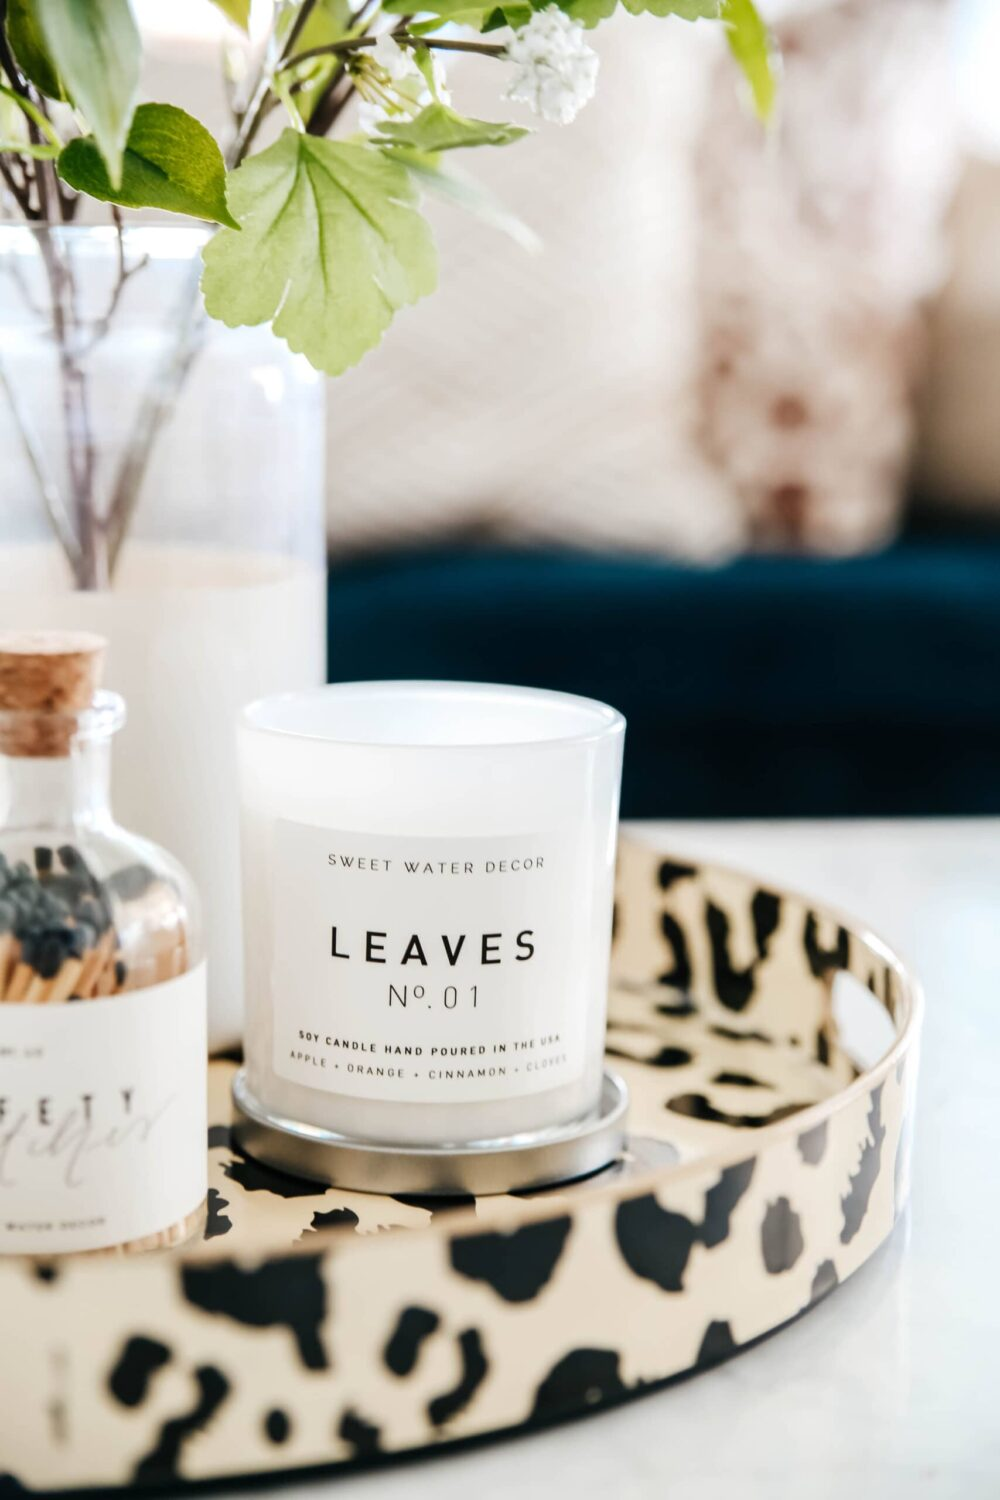 The most delicious smelling candles for the season! #ShopABlissfulNest #candle #fallcandle